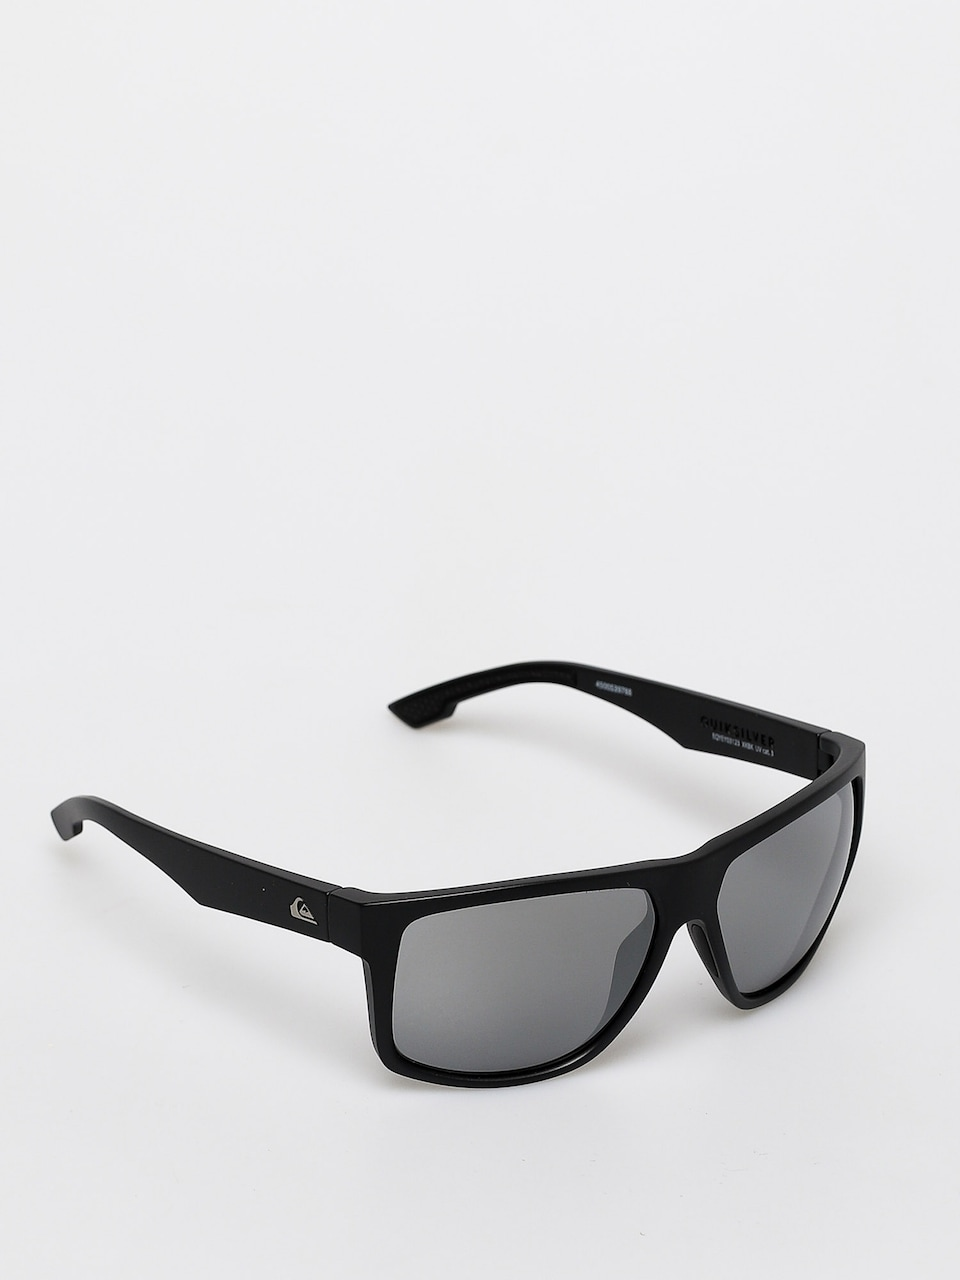 Quiksilver Transmission Sunglasses Matte Black Flash Si